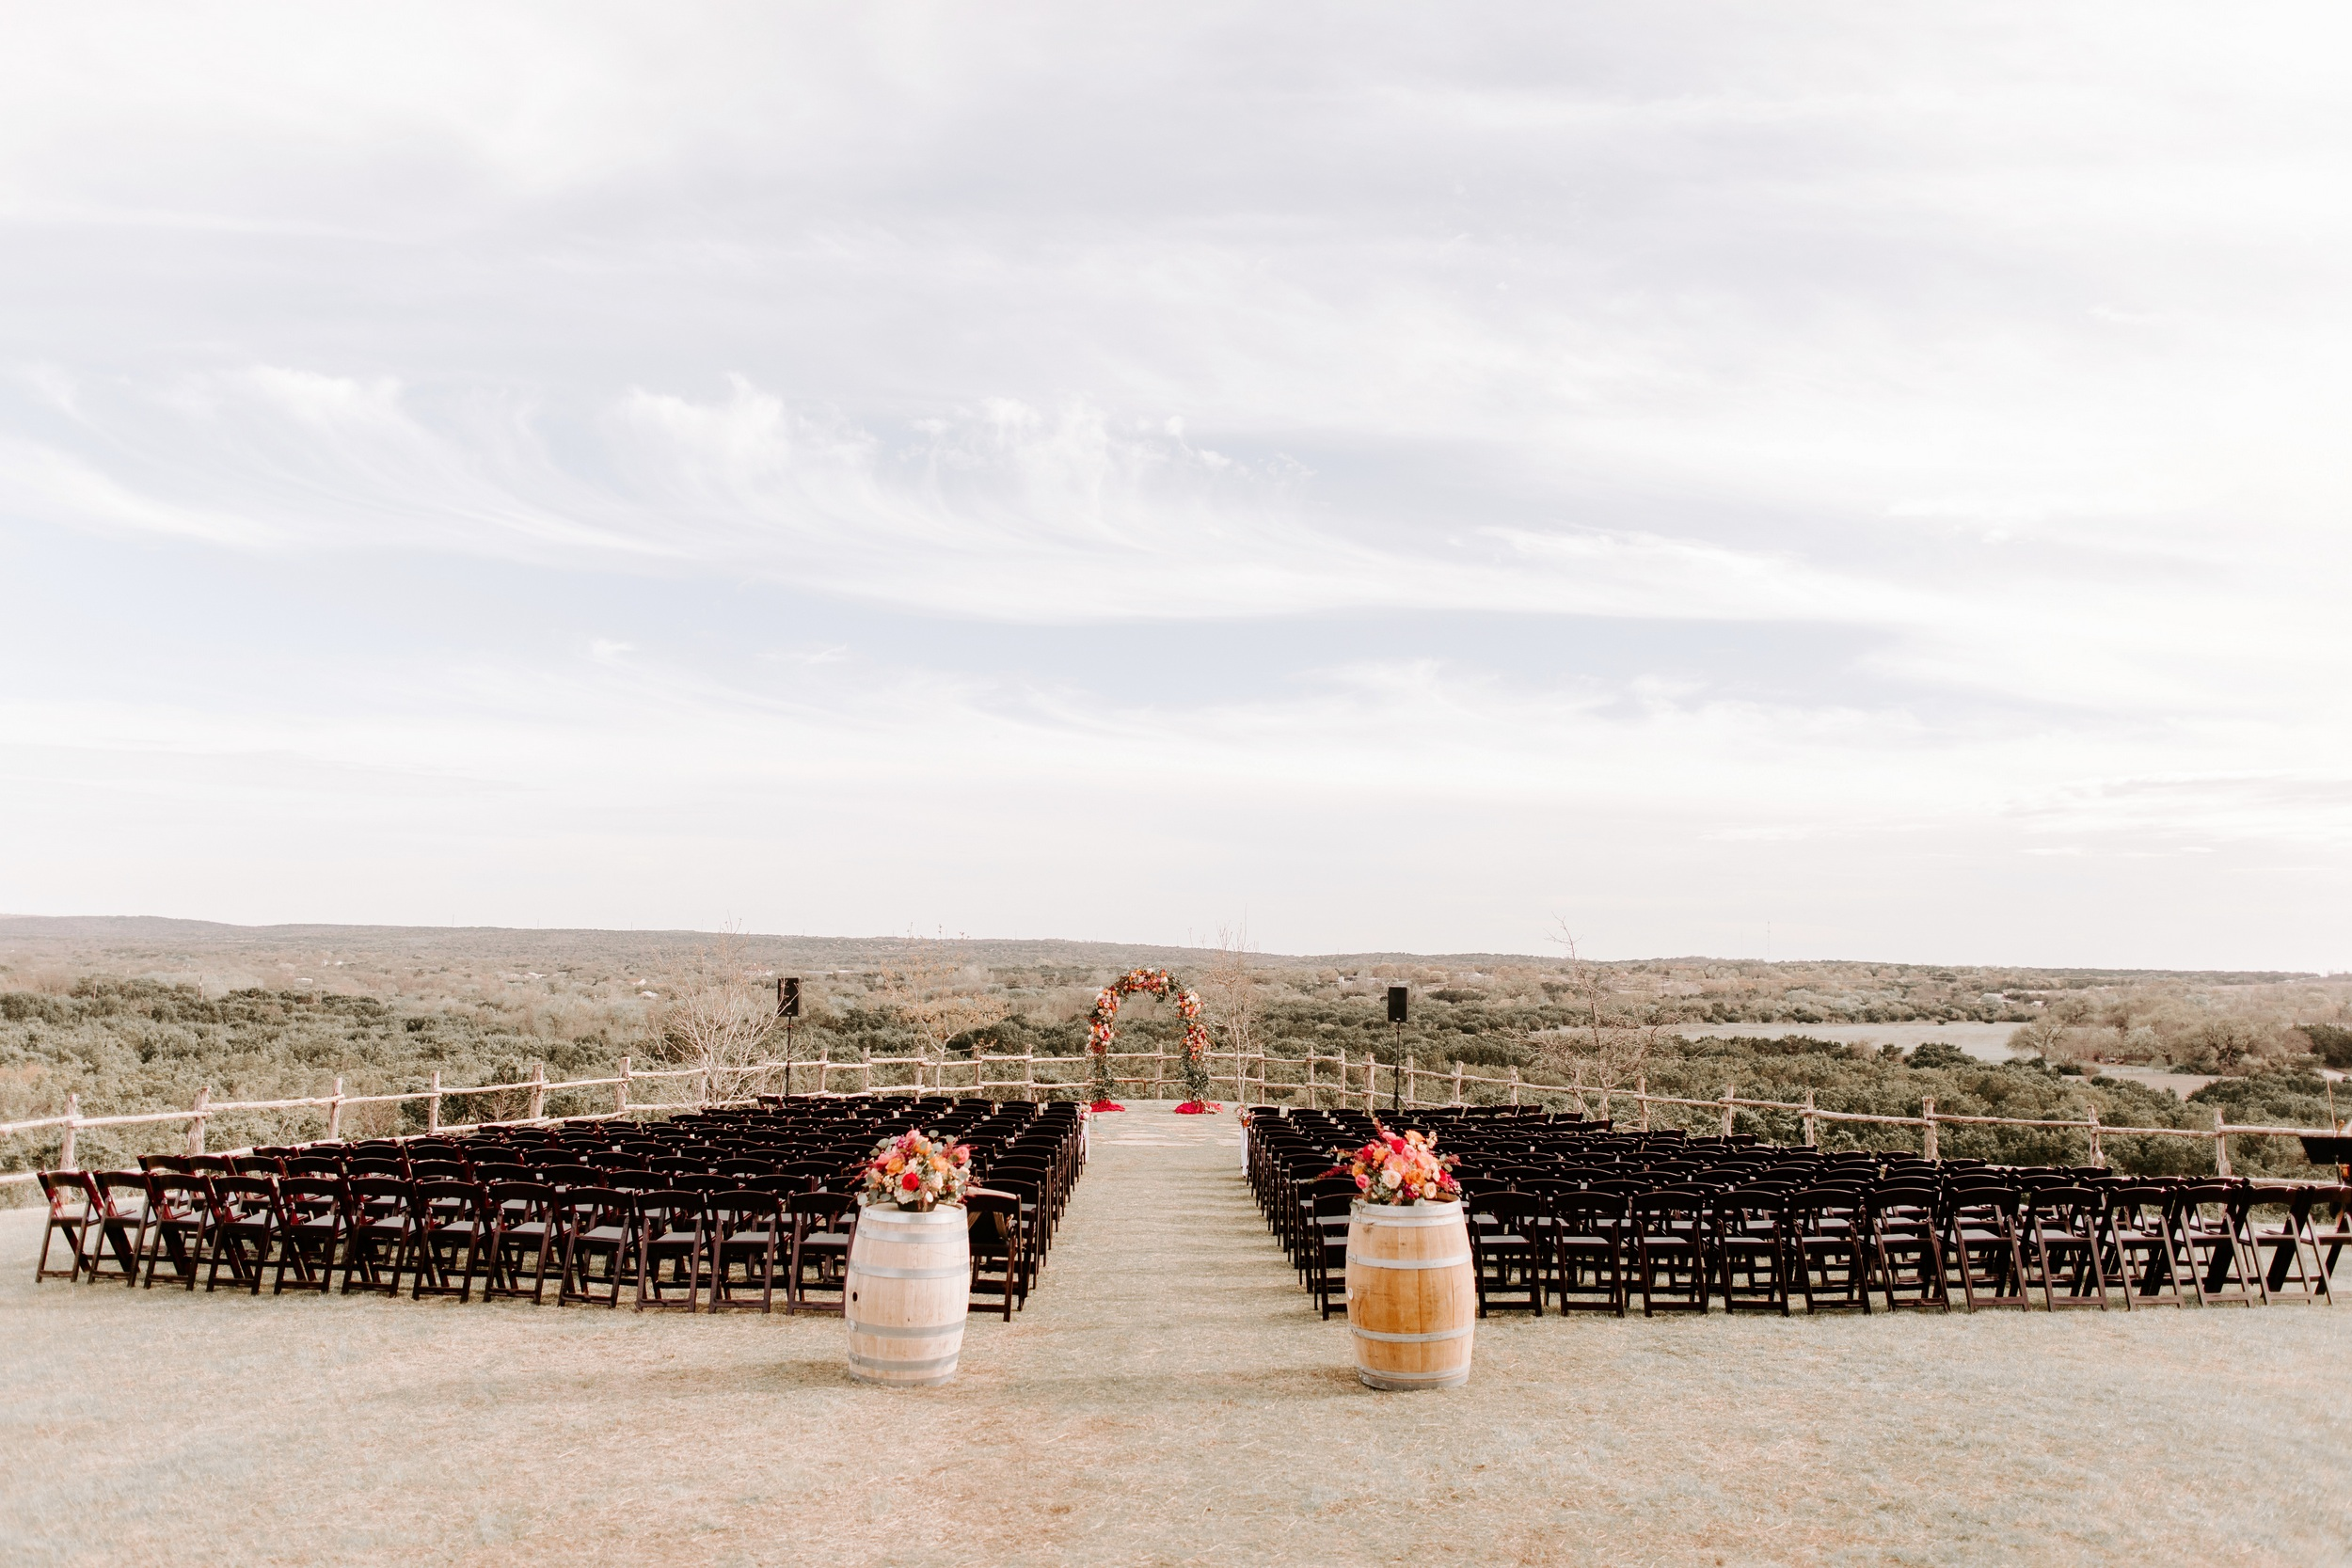 1-MADDY + PATRICK WEDDING_HALEY RYNN RINGO_rent my dust_details_ (153).jpg